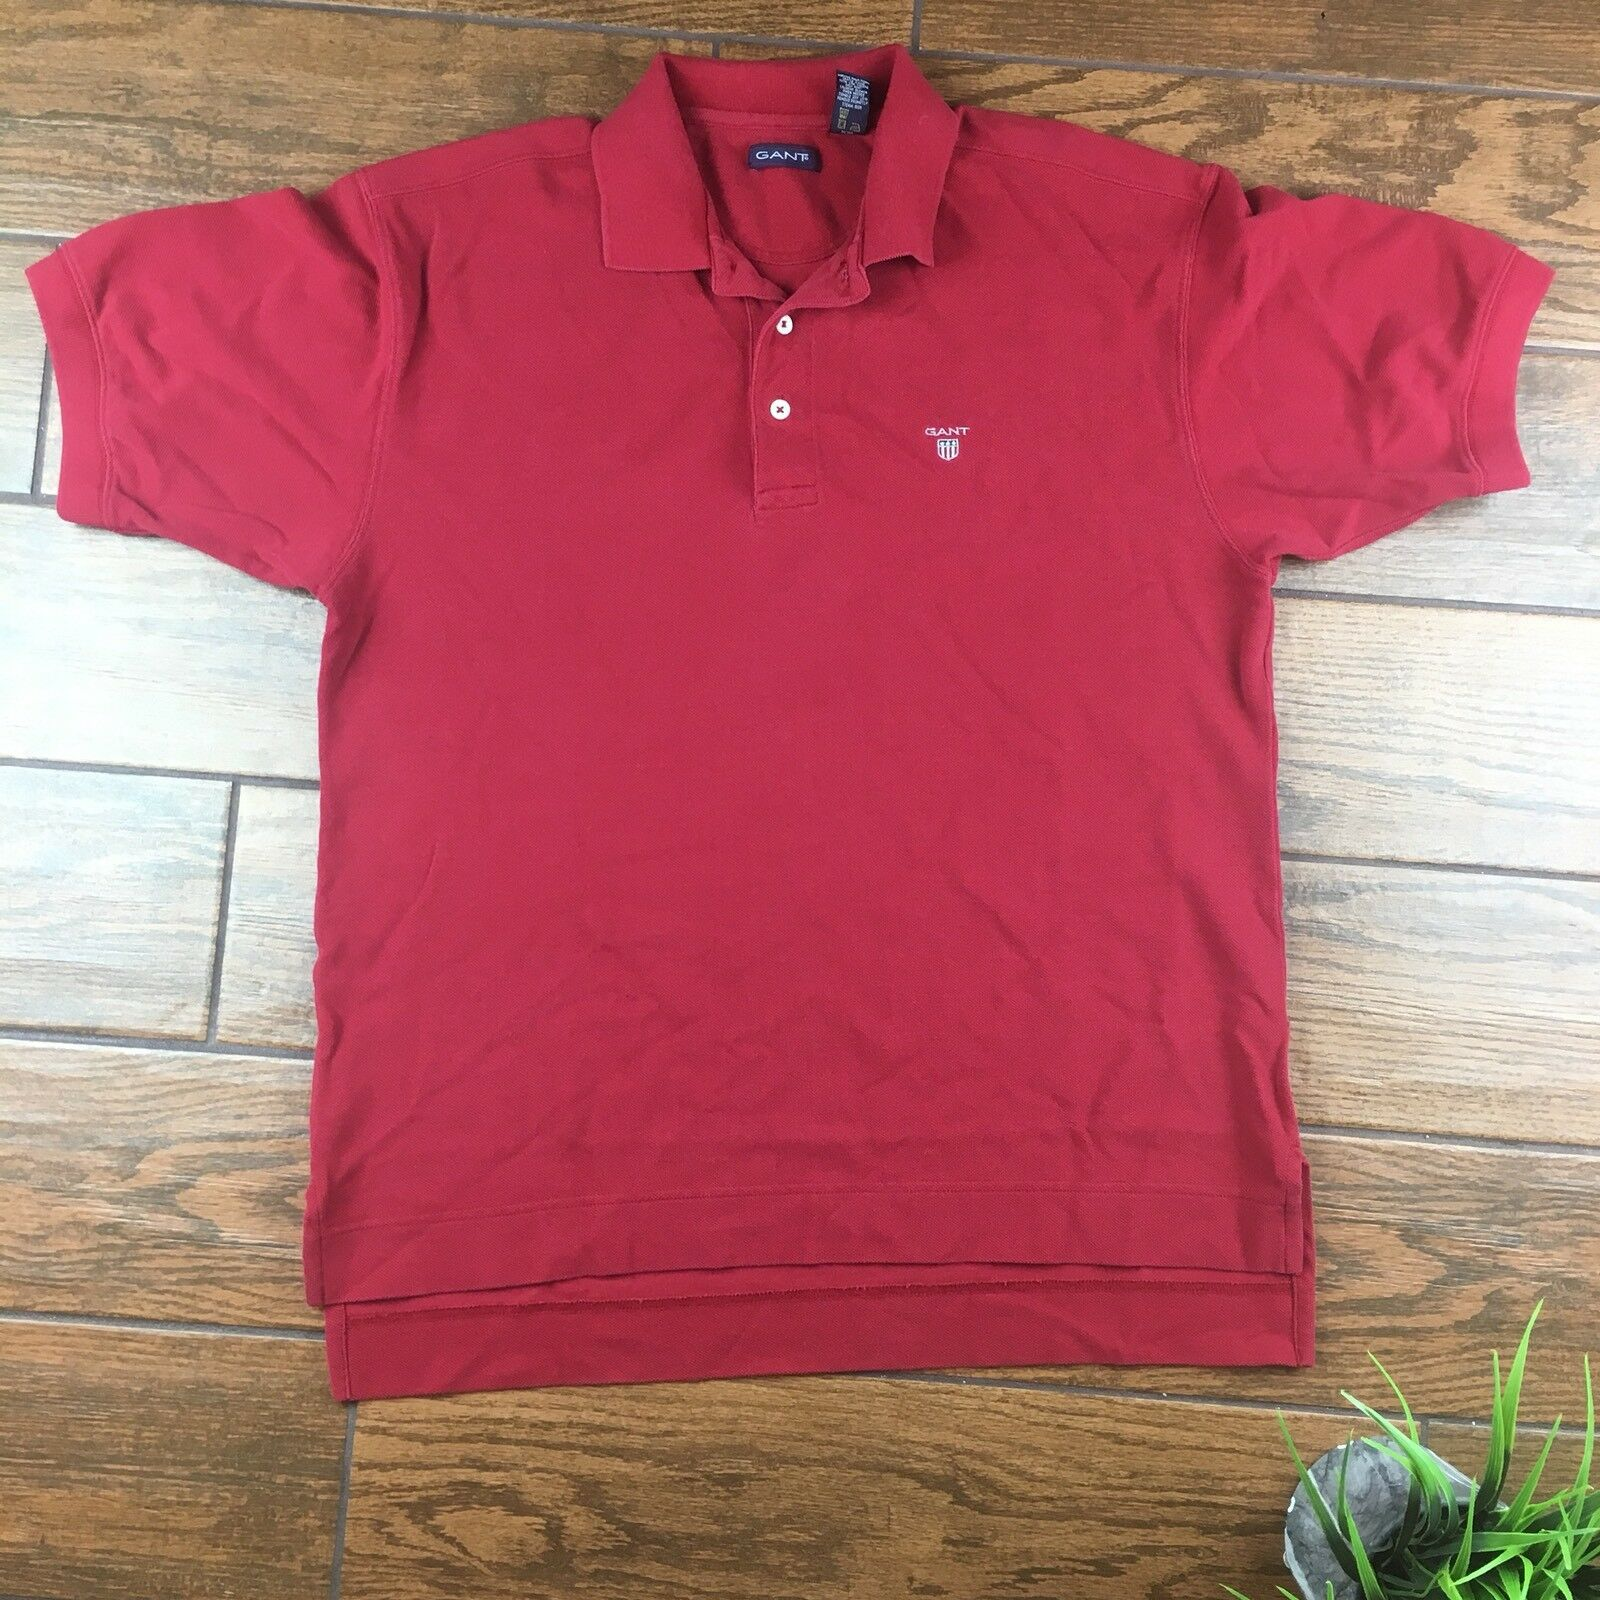 Gant MENS LARGE Red Polo Shirt Cotton Collared